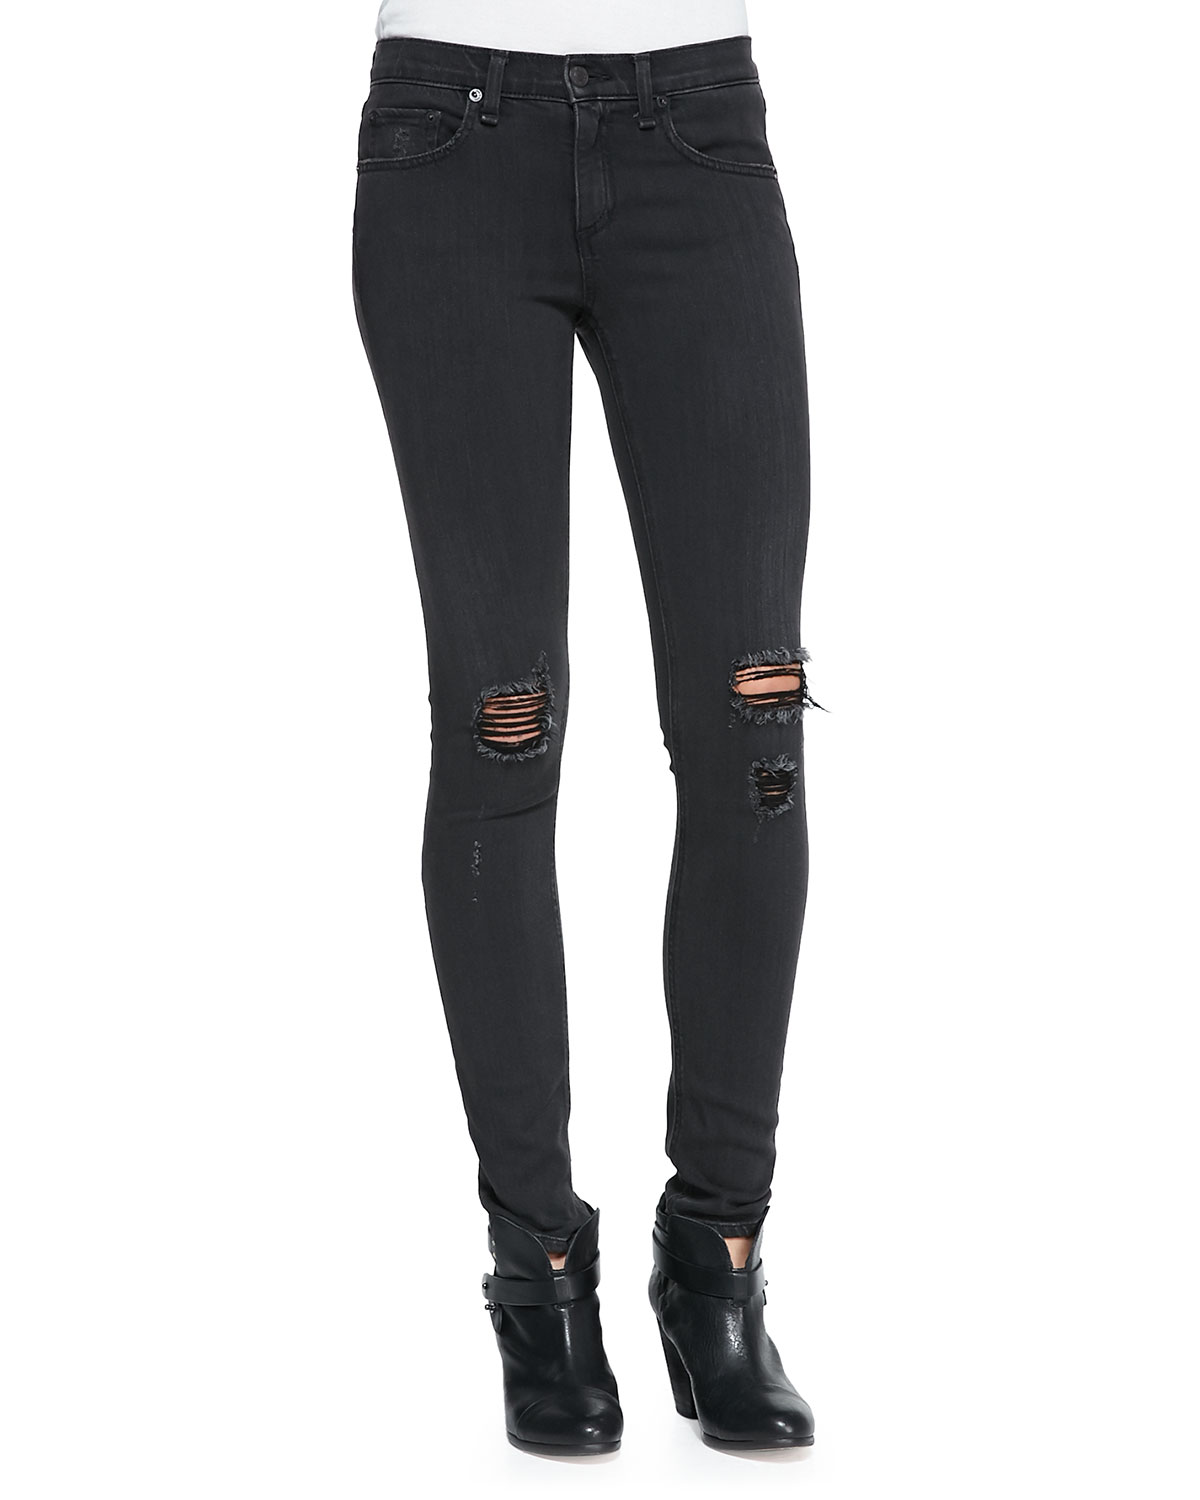 The classic tee & the skinny distressed denim jeans